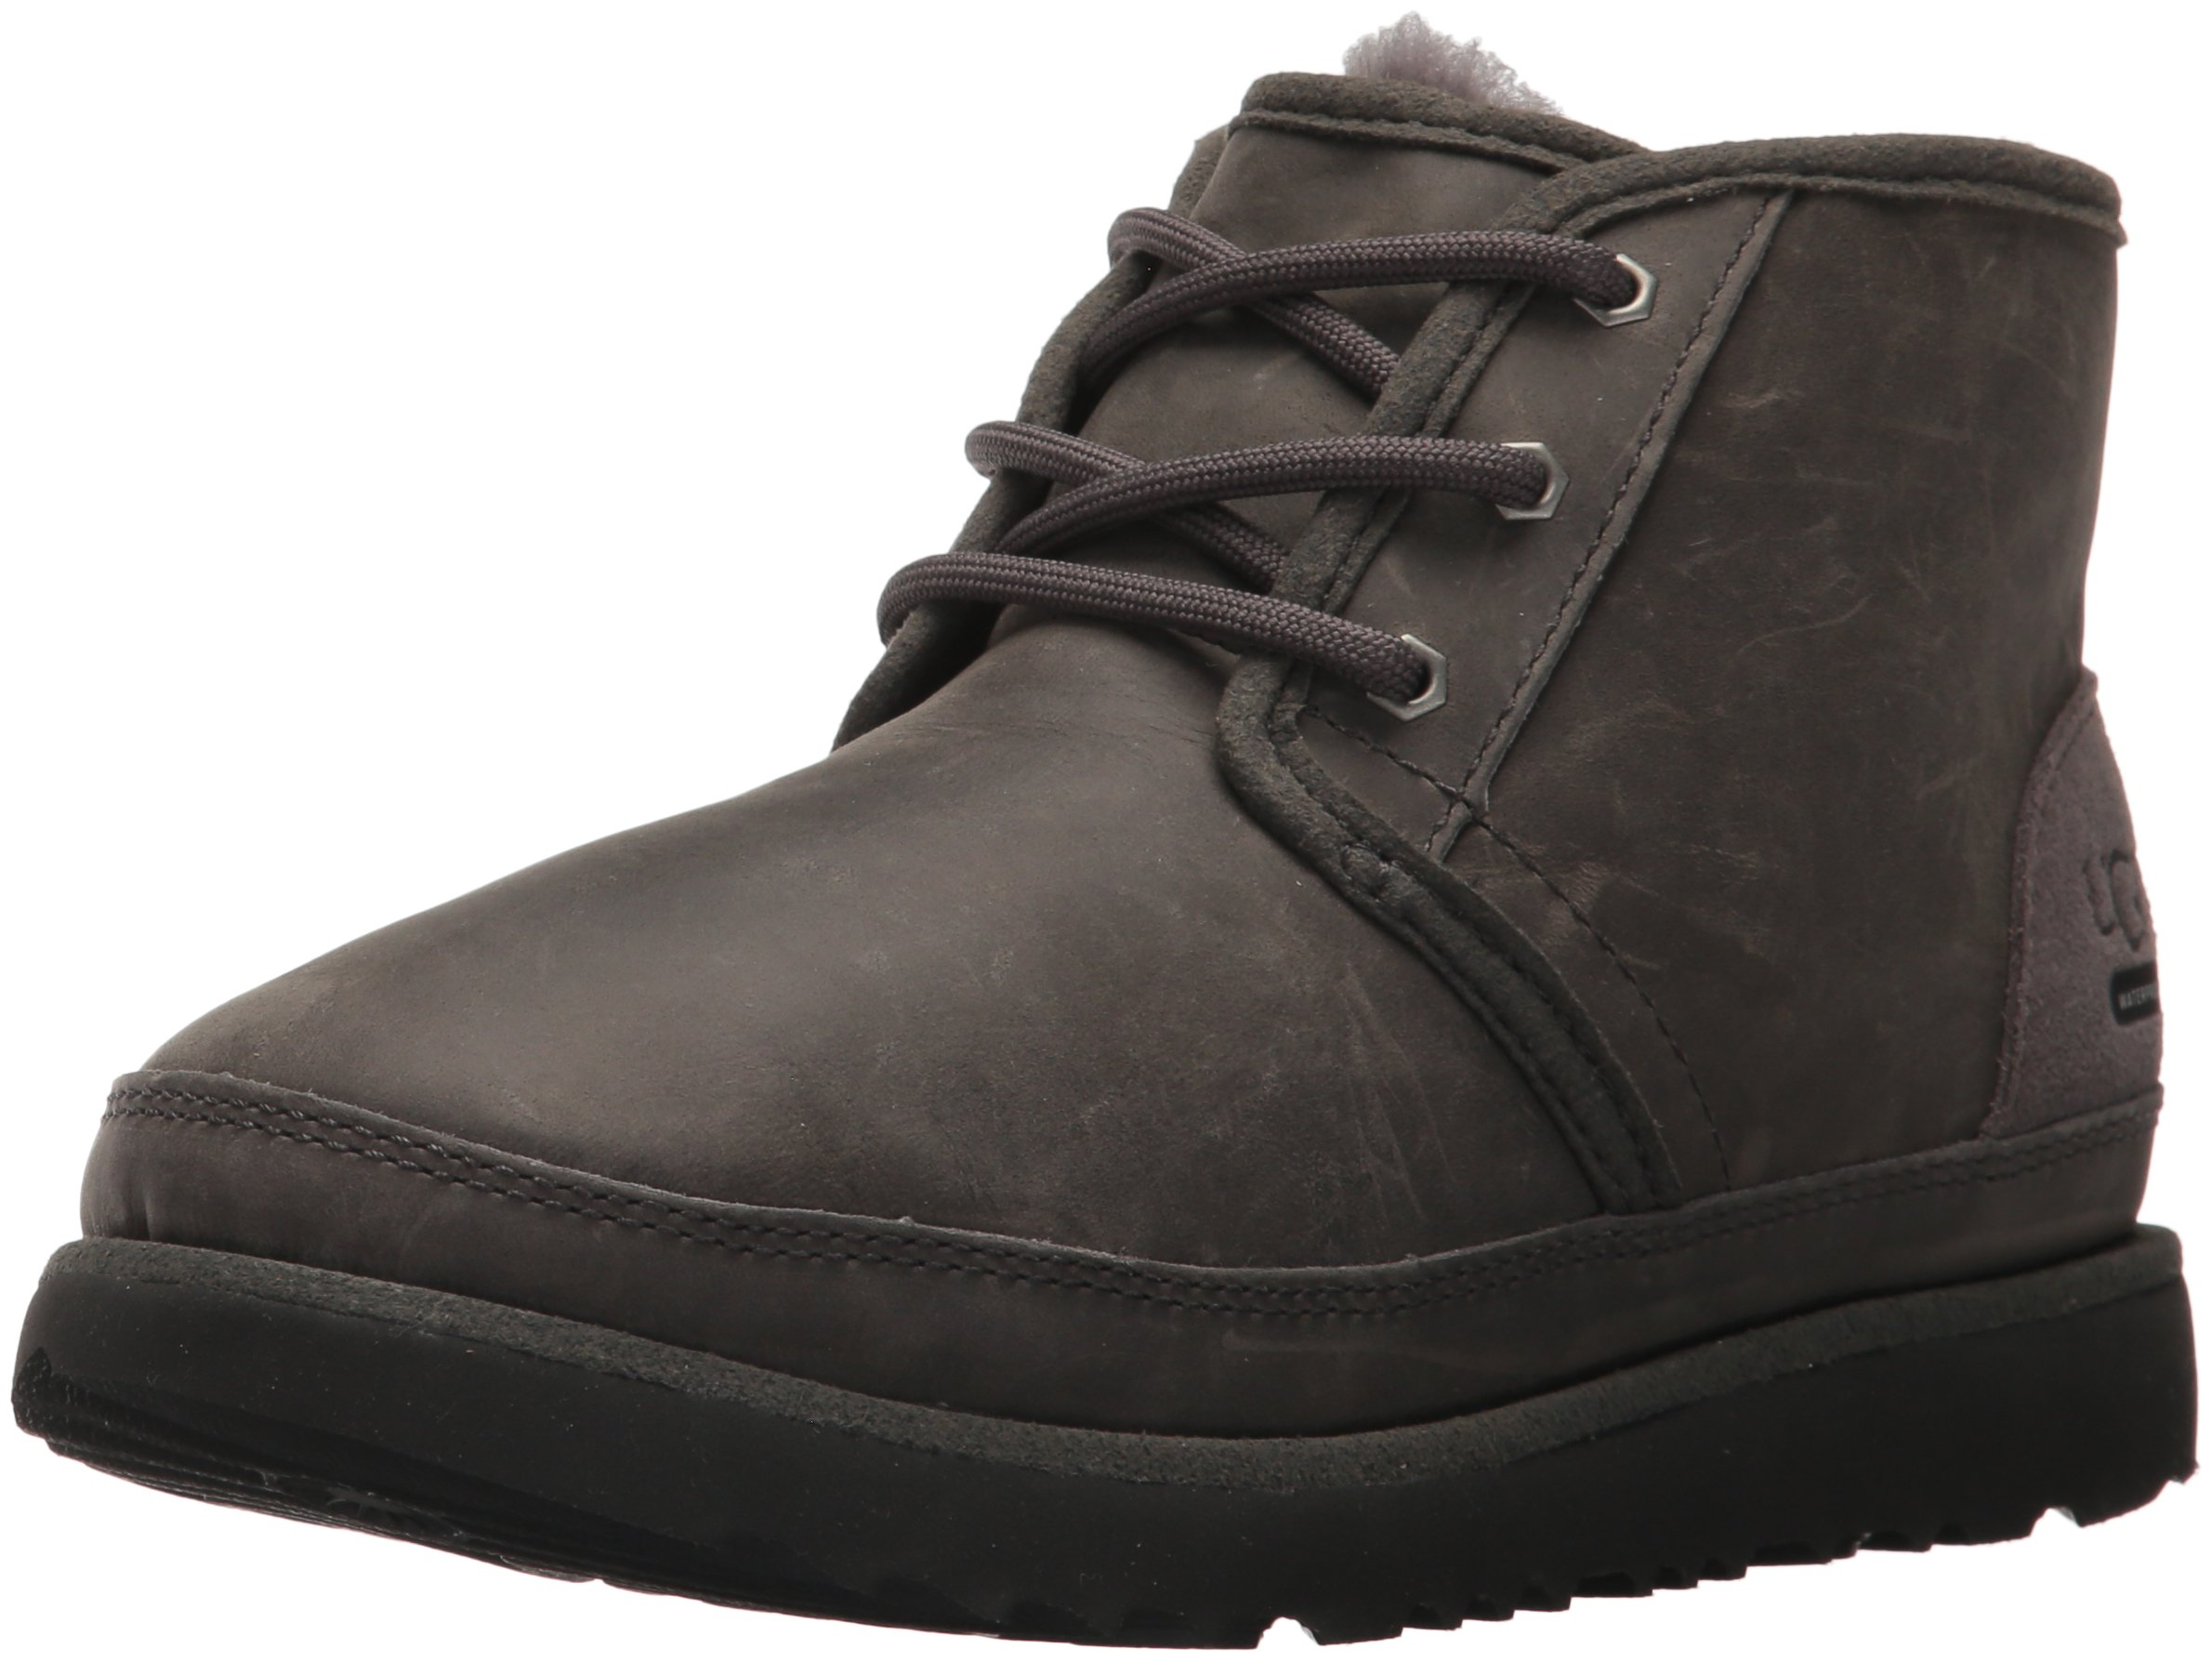 UGG Kids K Neumel II WP Pull-on Boot, Charcoal, 6 M US Big Kid